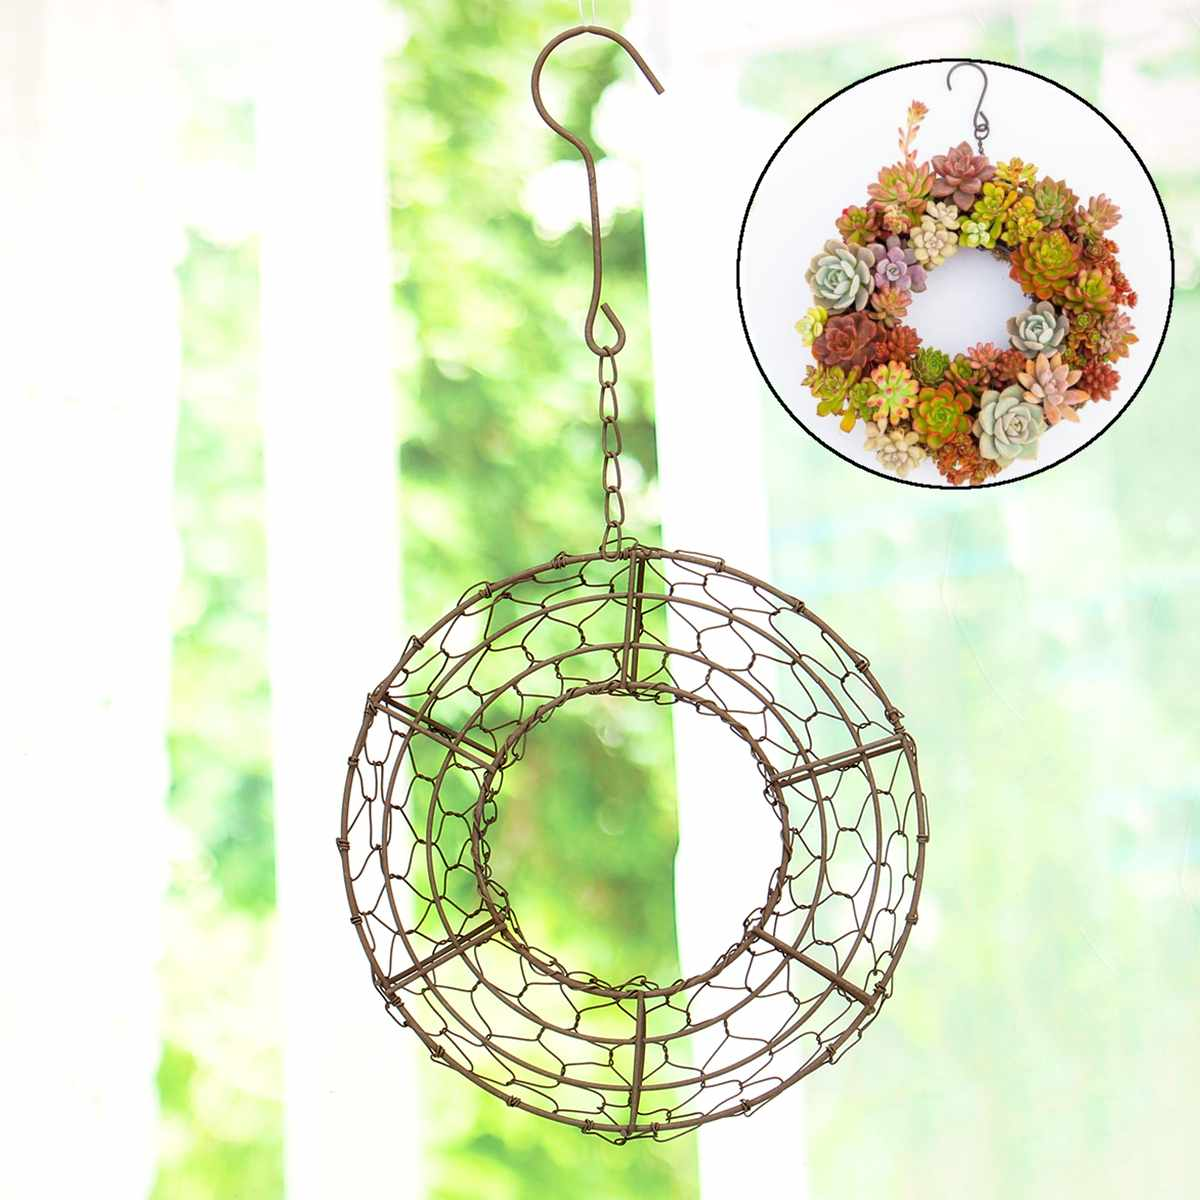 Modest Round Iron Hanging Planter Pot Flowerpot Wire Wreath For Succulent Plant Decor Creativ Wall Hanging Holder Plant Pots Wreath Pure White And Translucent Garden Pots & Planters Home & Garden